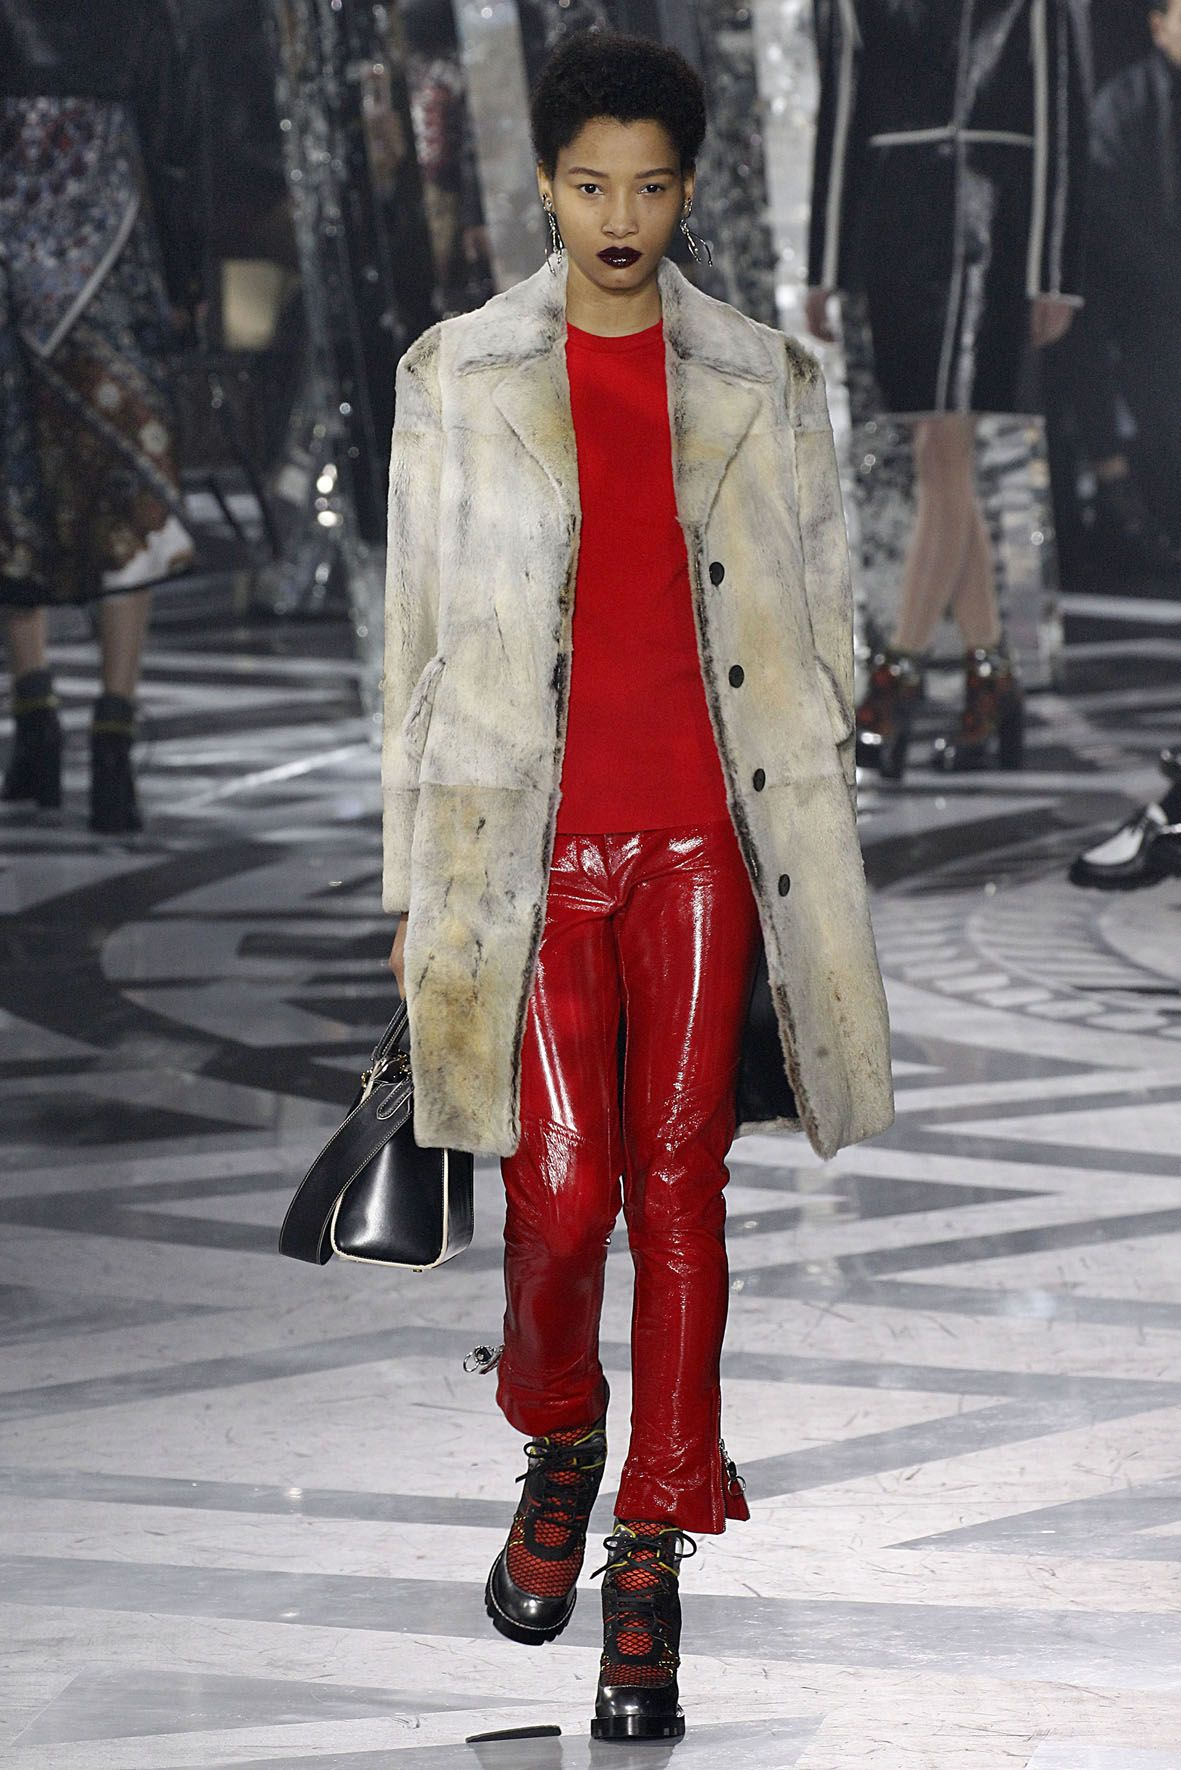 Louis Vuitton A/W 2016 Red leather jacket, Fashion